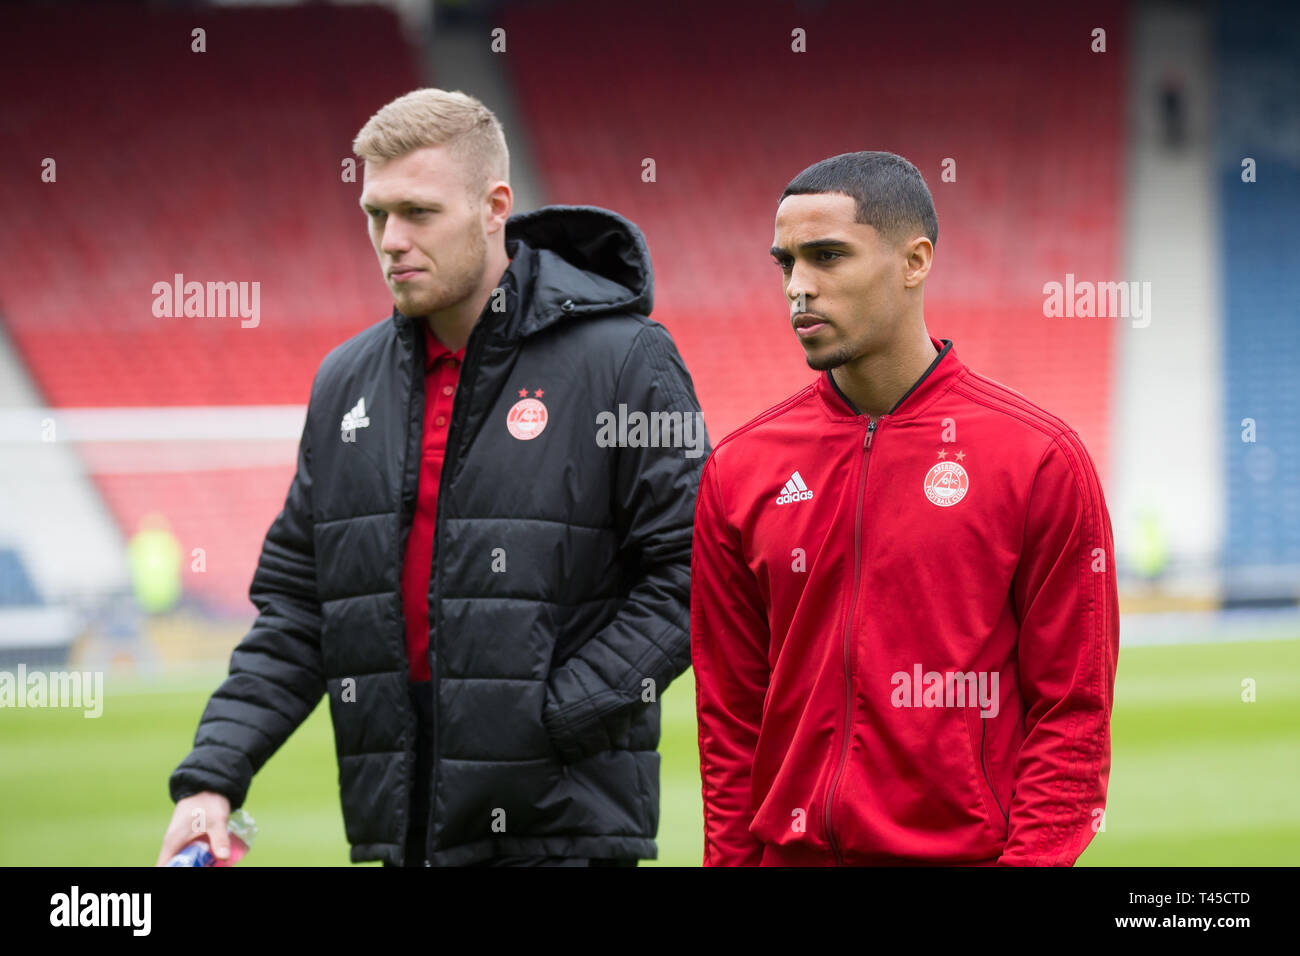 Hampden Park, Glasgow, UK. 14th Apr, 2019. Scottish Cup football, semi final, Aberdeen versus Celtic; Sam Cosgrove and Max Lowe of Aberdeen inspects the pitch before the match Credit: Action Plus Sports/Alamy Live News - Stock Image